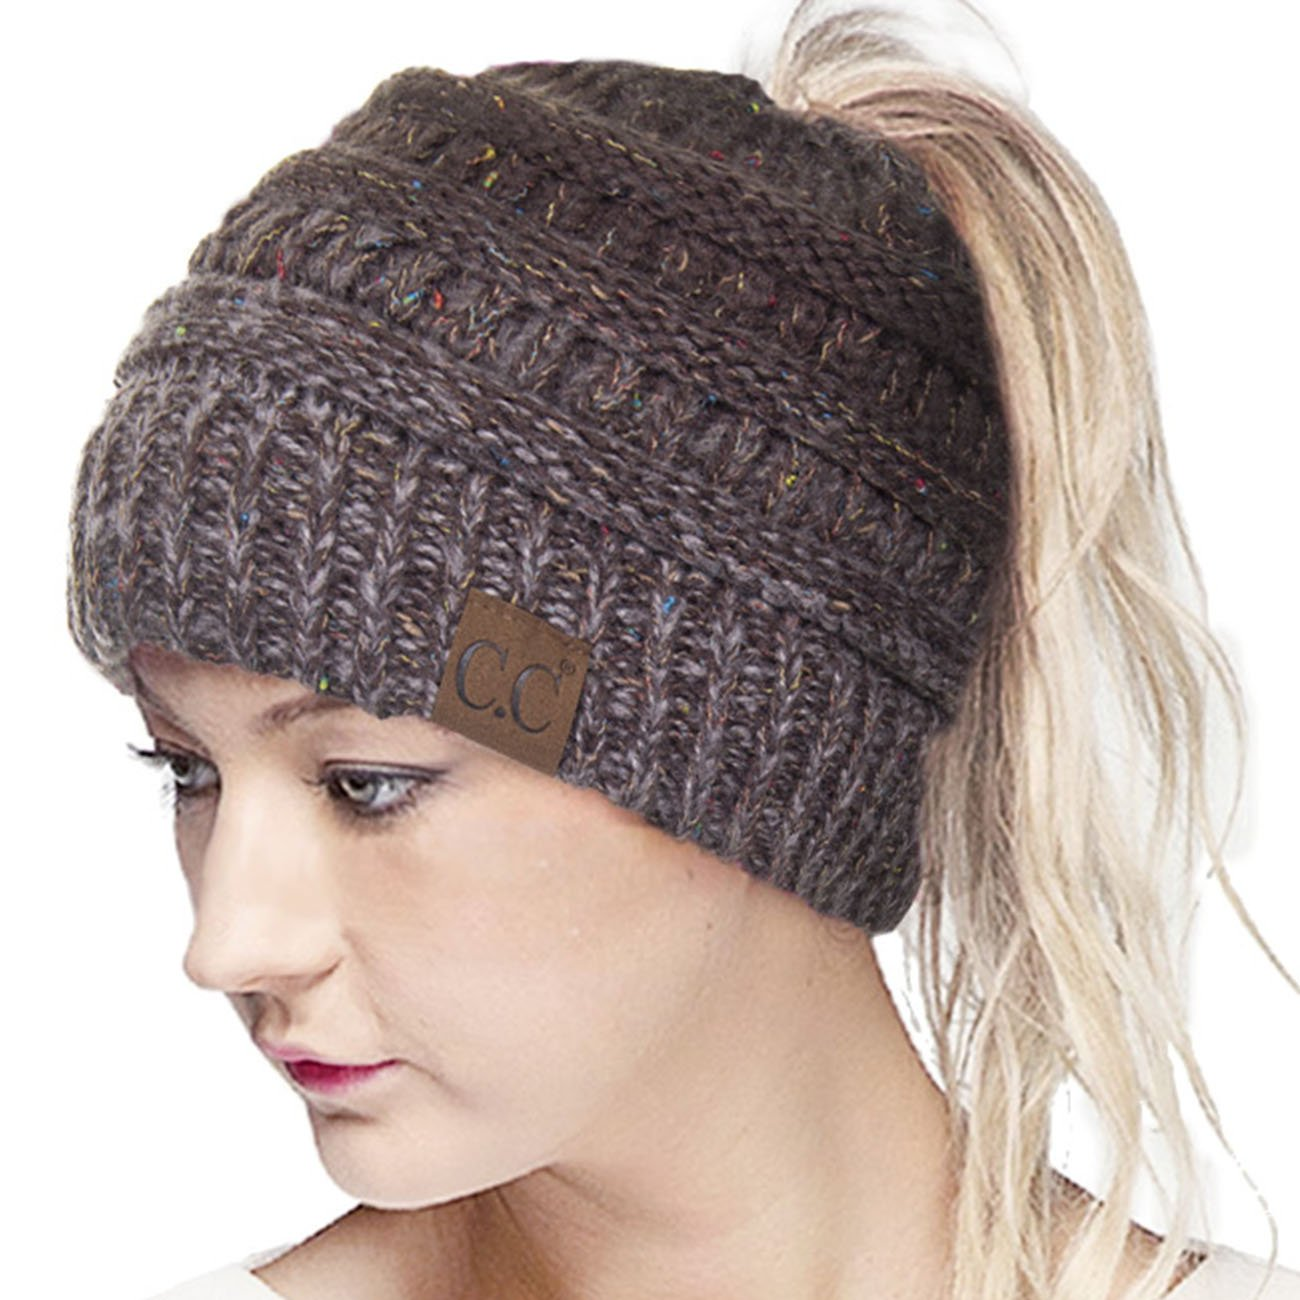 ScarvesMe CC Confetti Ombre Beanietail Ponytail Messy Bun Solid Ribbed Beanie Hat Cap (Brown)